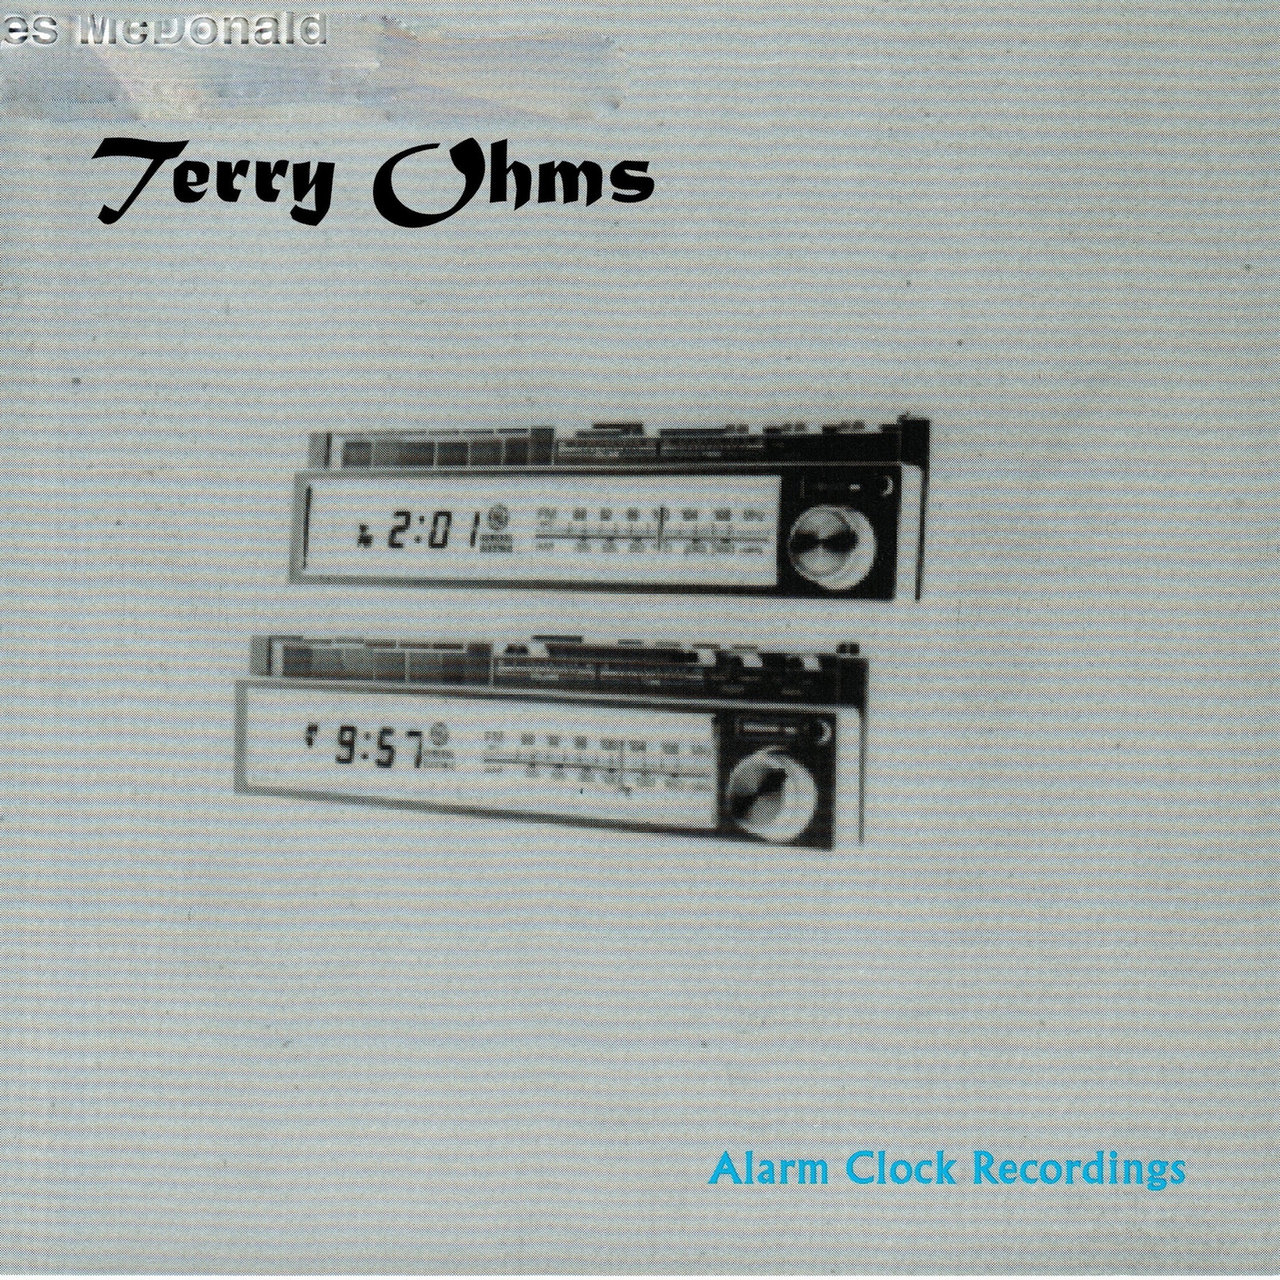 Alarm Clock Recordings